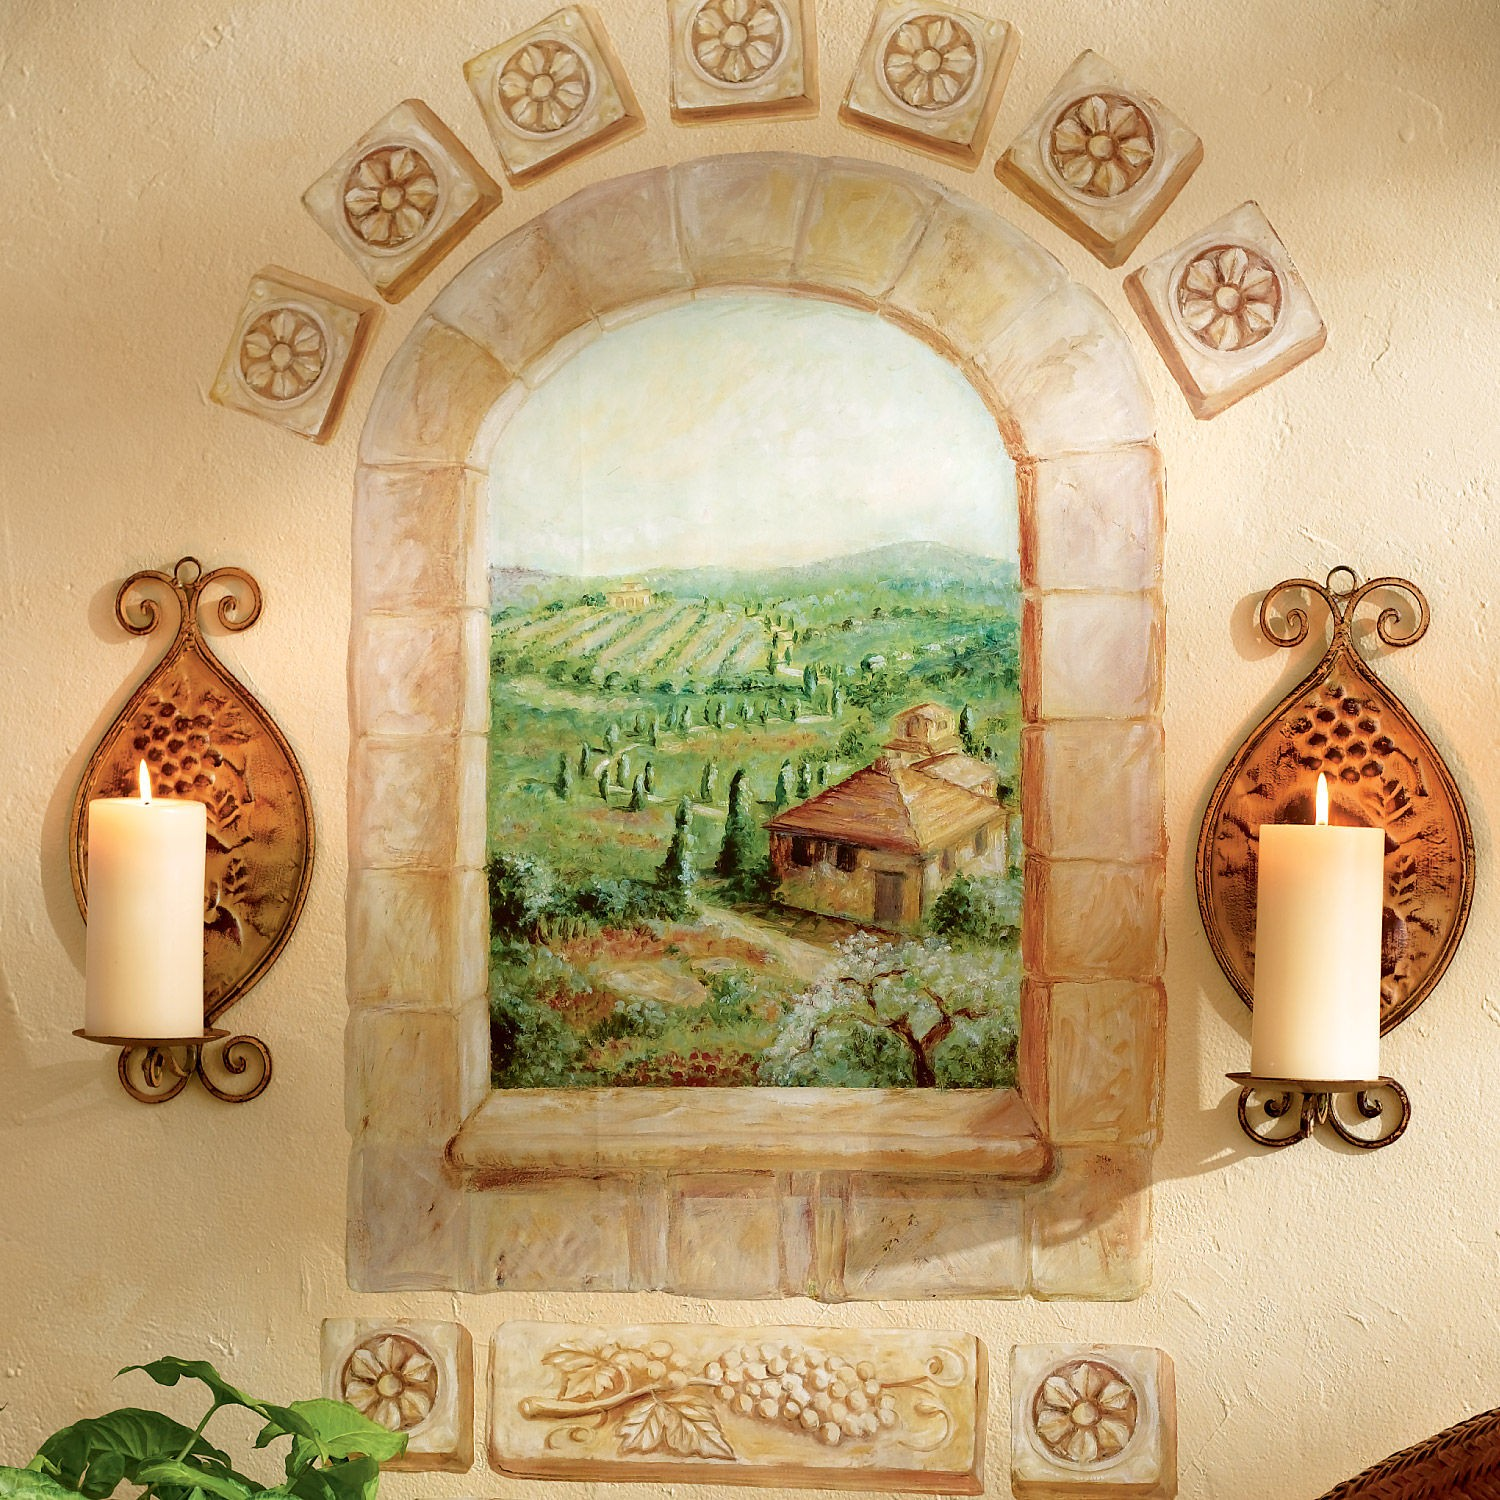 Wallpaper Murals For Bathrooms Download Tuscany Wallpaper Murals Gallery 1500x1500